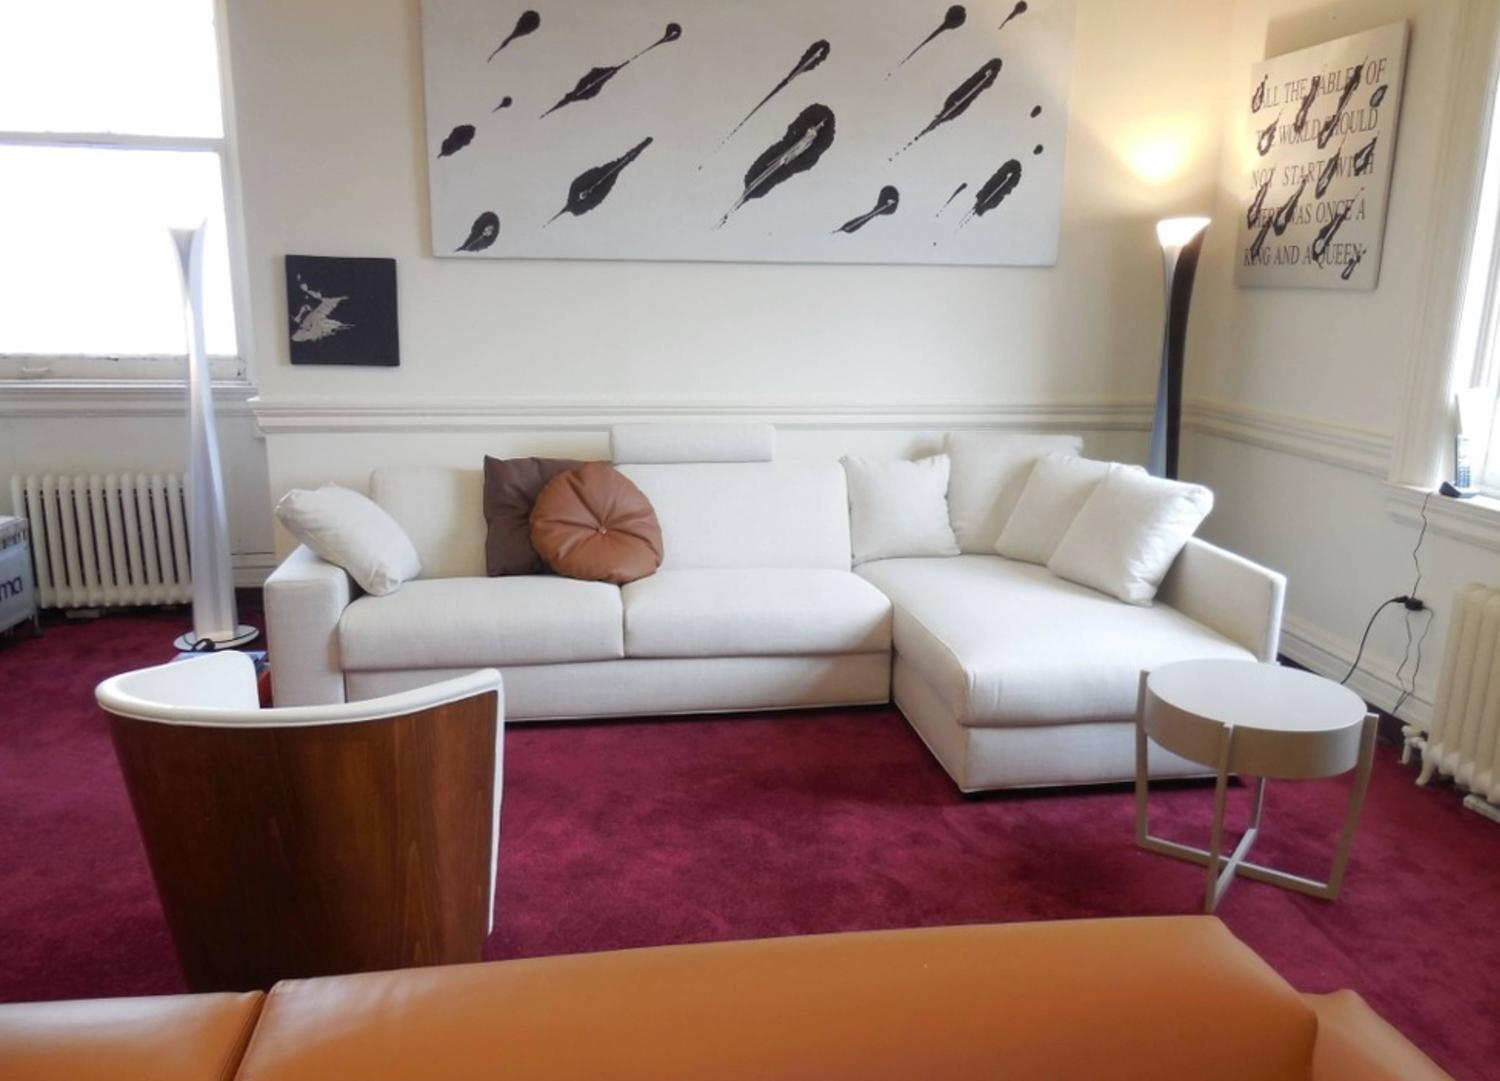 Modern Italian Sofa Bed Sectional SB41, Fabric, New, Made In Italy For Sale  At 1stdibs